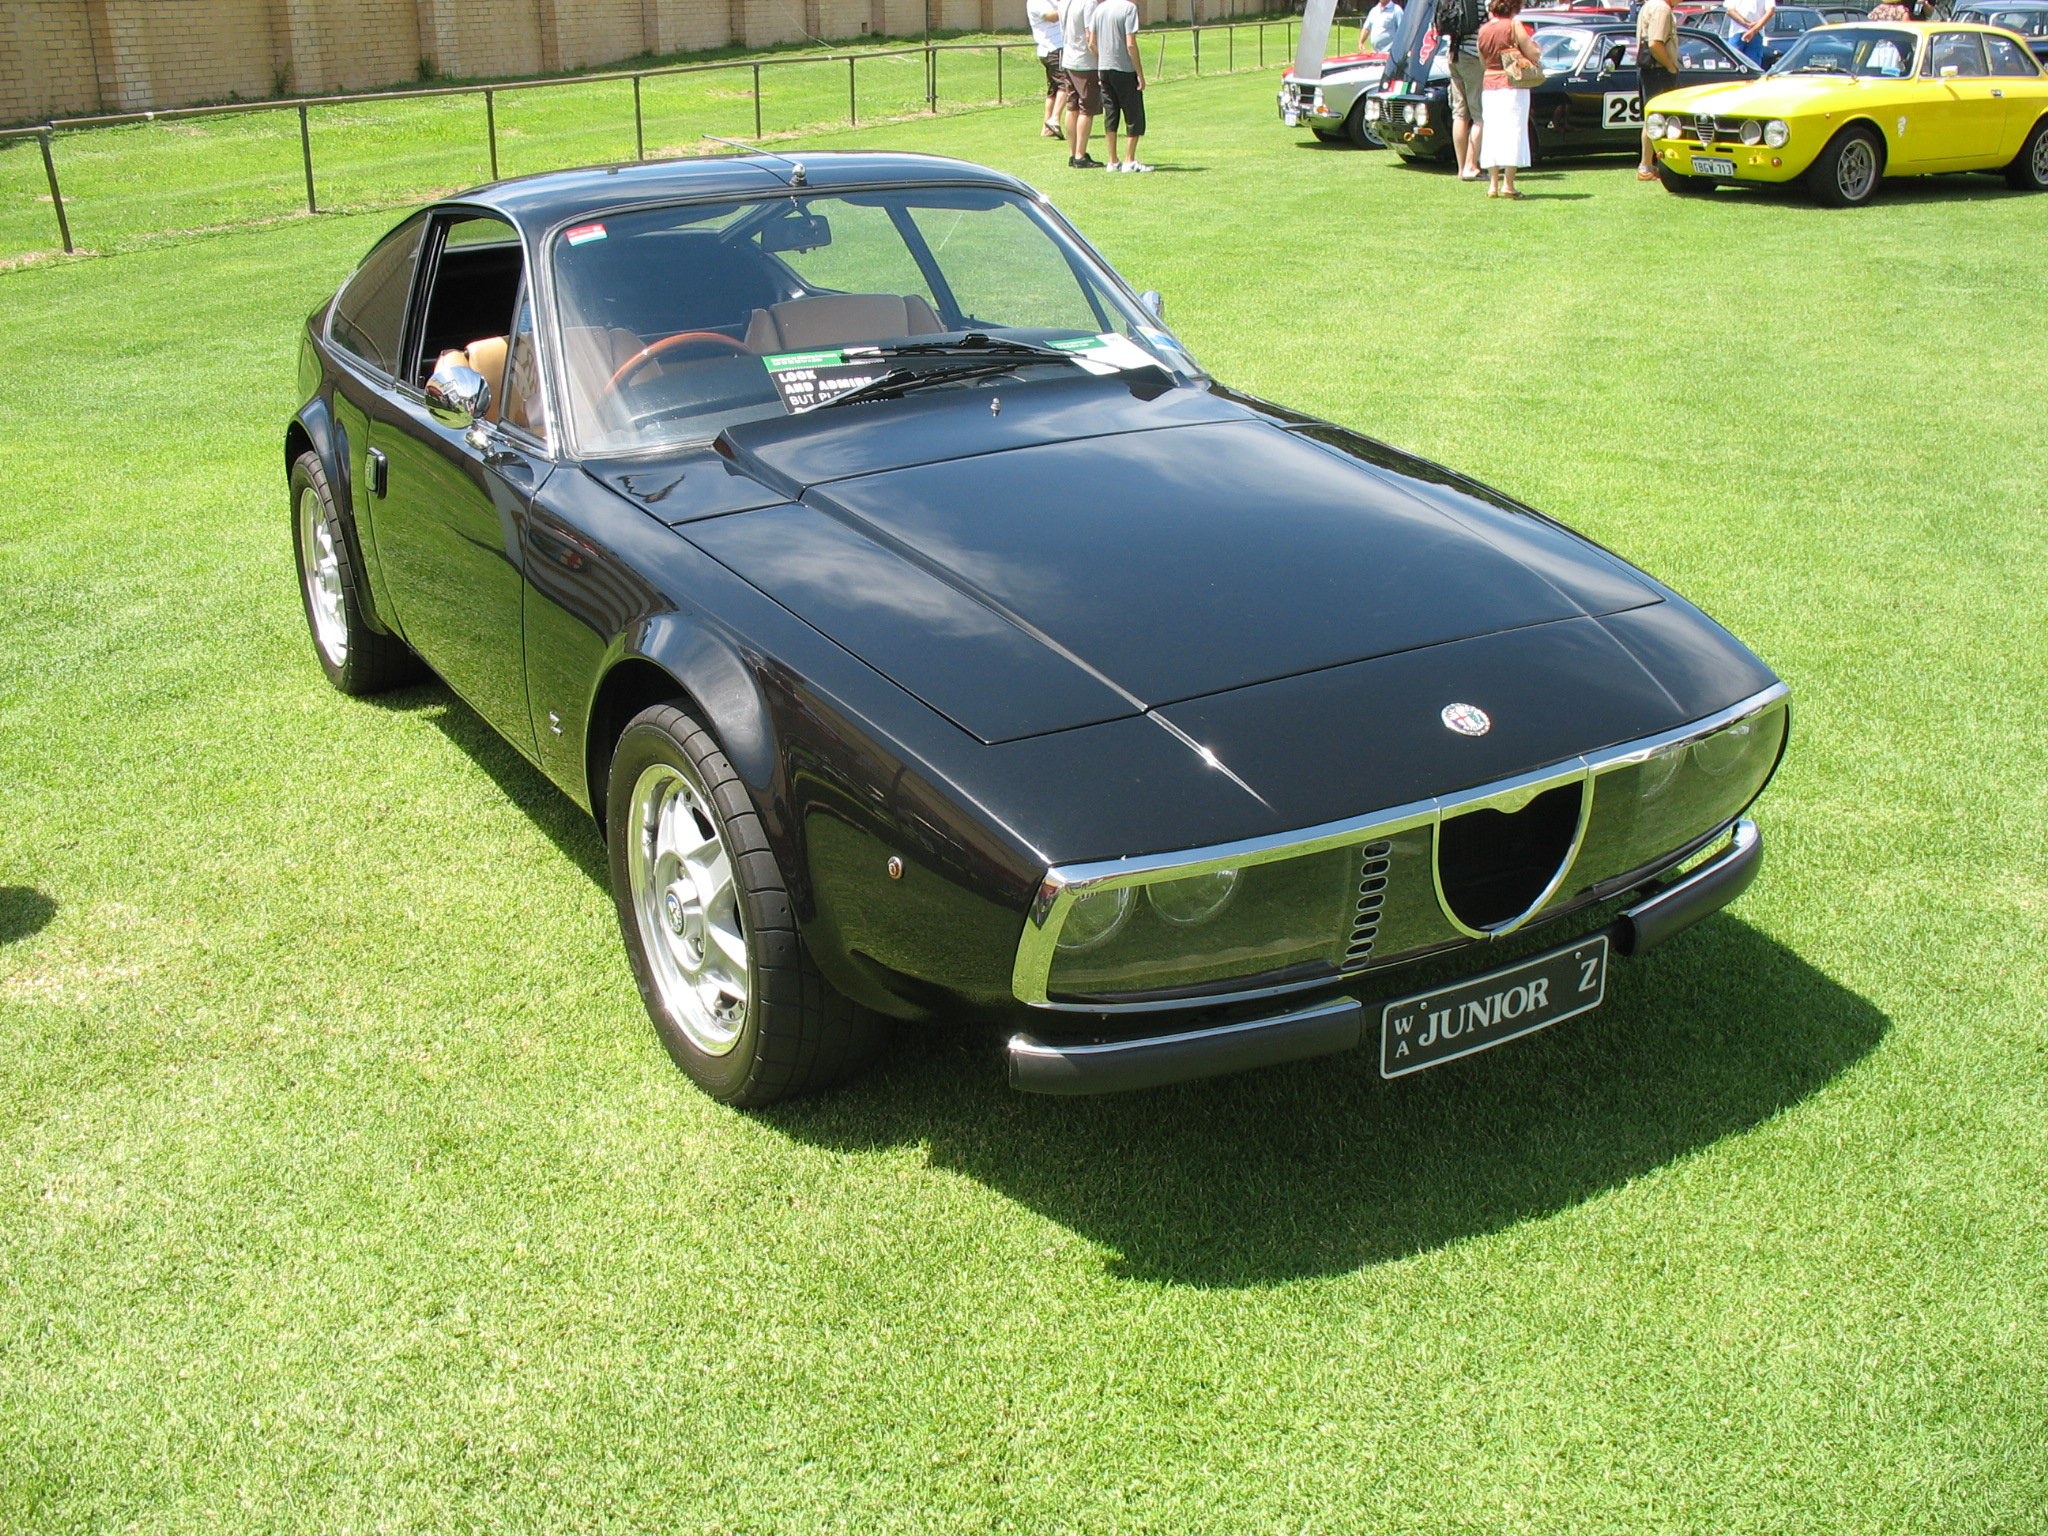 Alfa romeo junior photo - 3